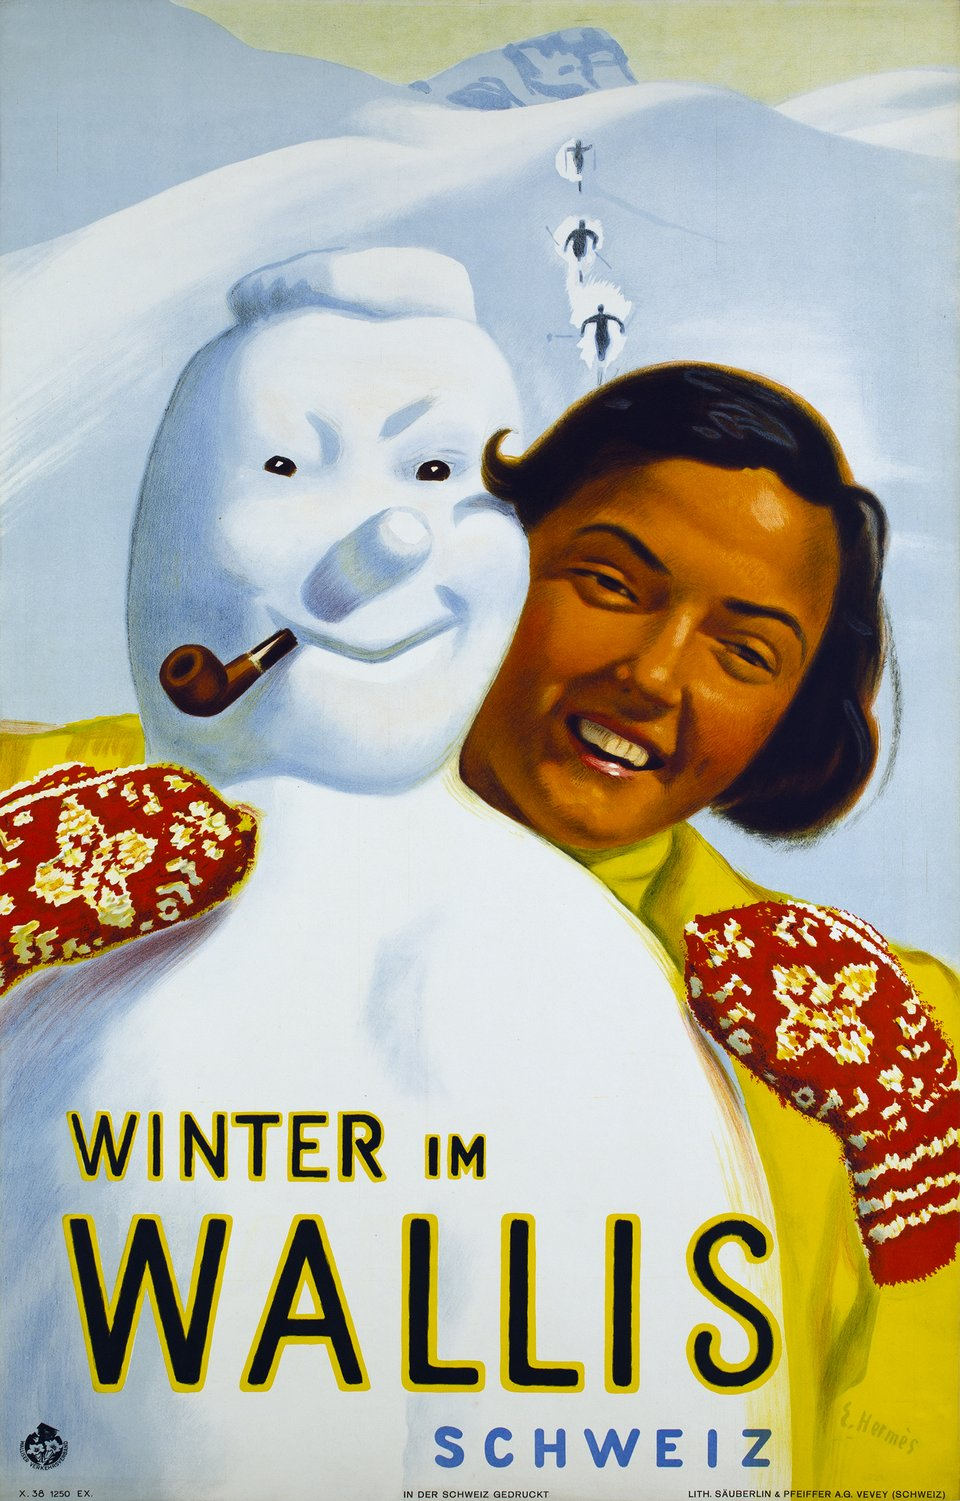 Winter im Wallis, Schweiz – Affiche ancienne – Eric HERMES – 1938